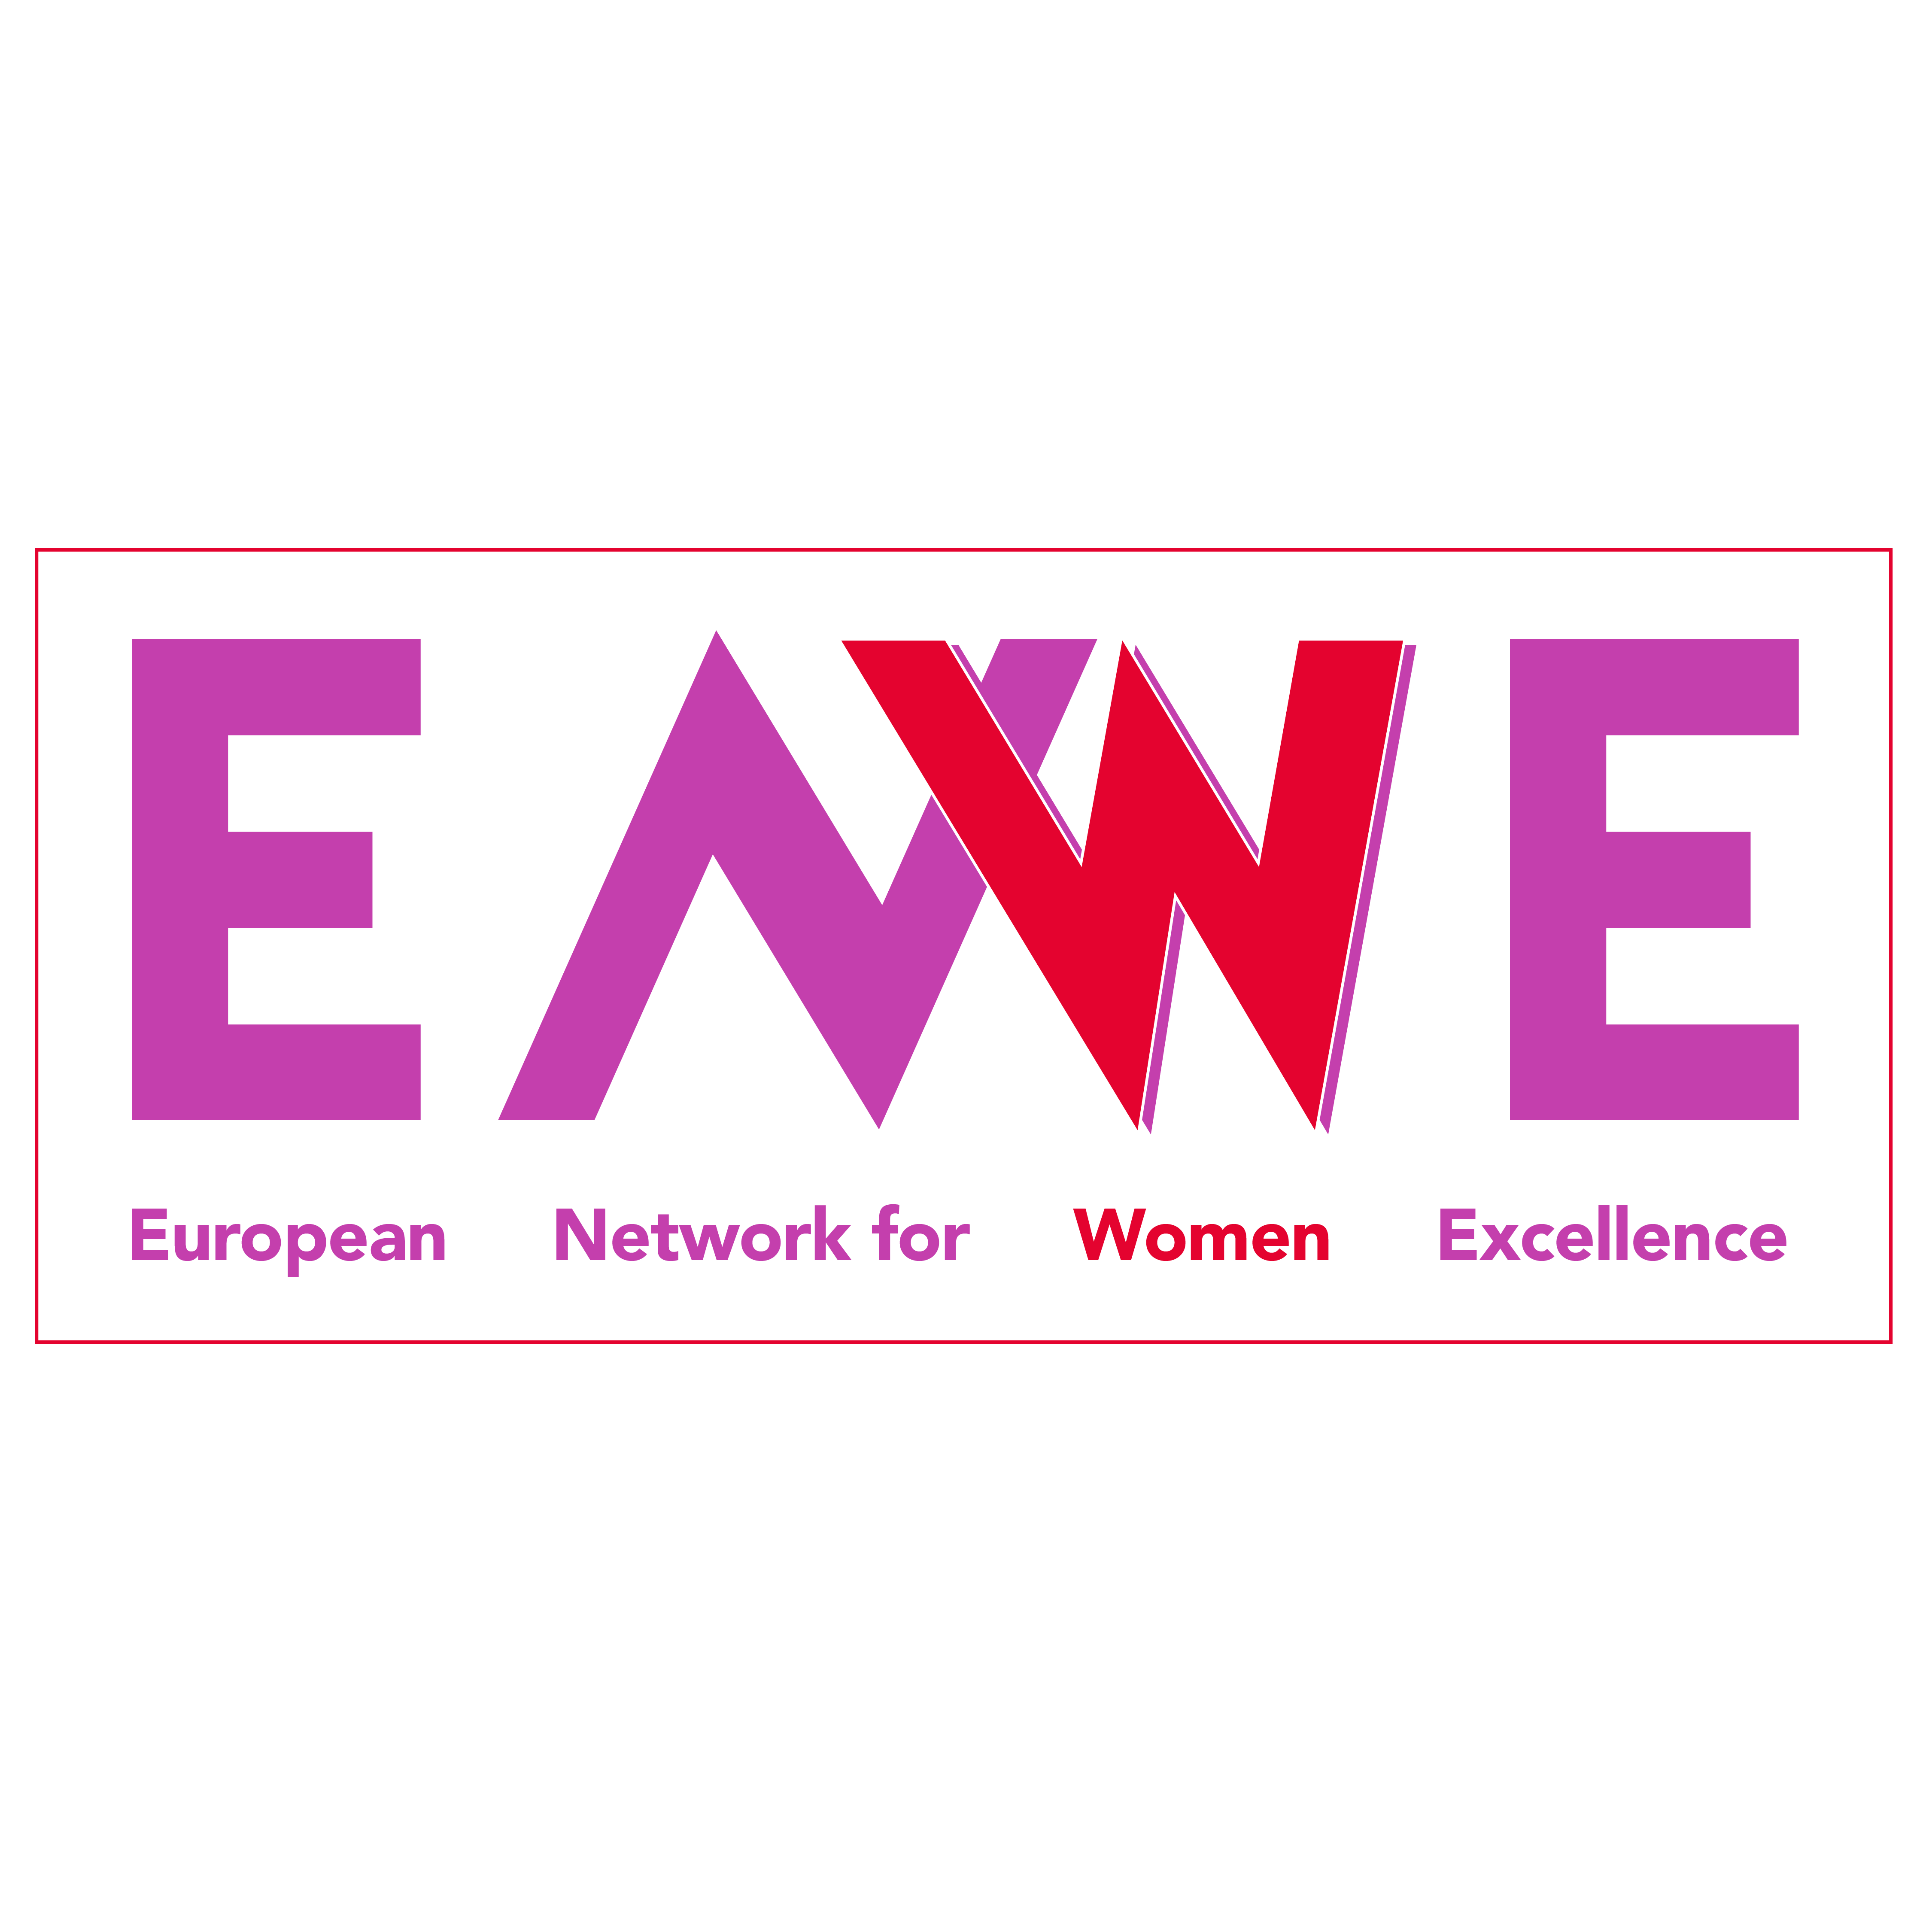 European Network for Women Excellence